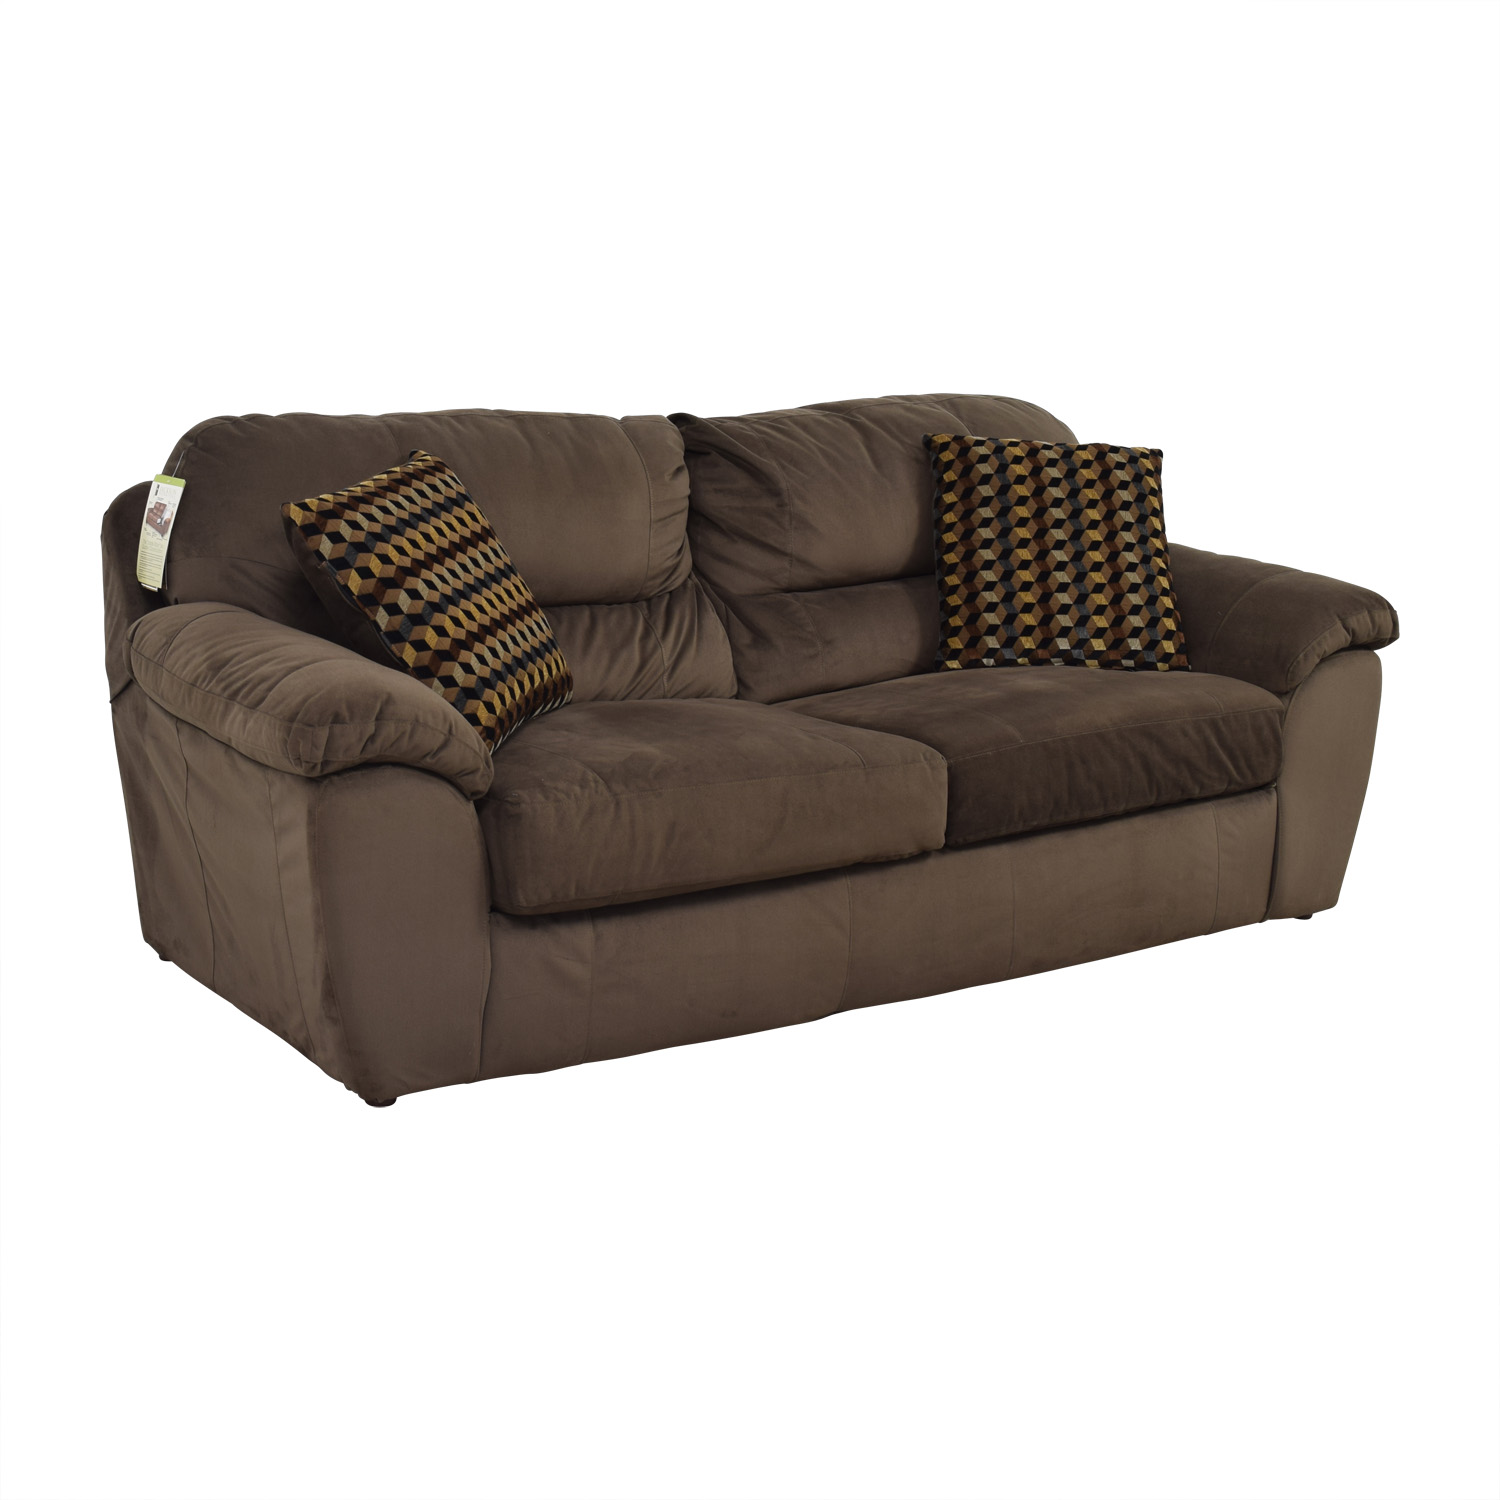 Bobs Furniture Bobs Furniture Brown Bailey Two-Cushion Sofa price